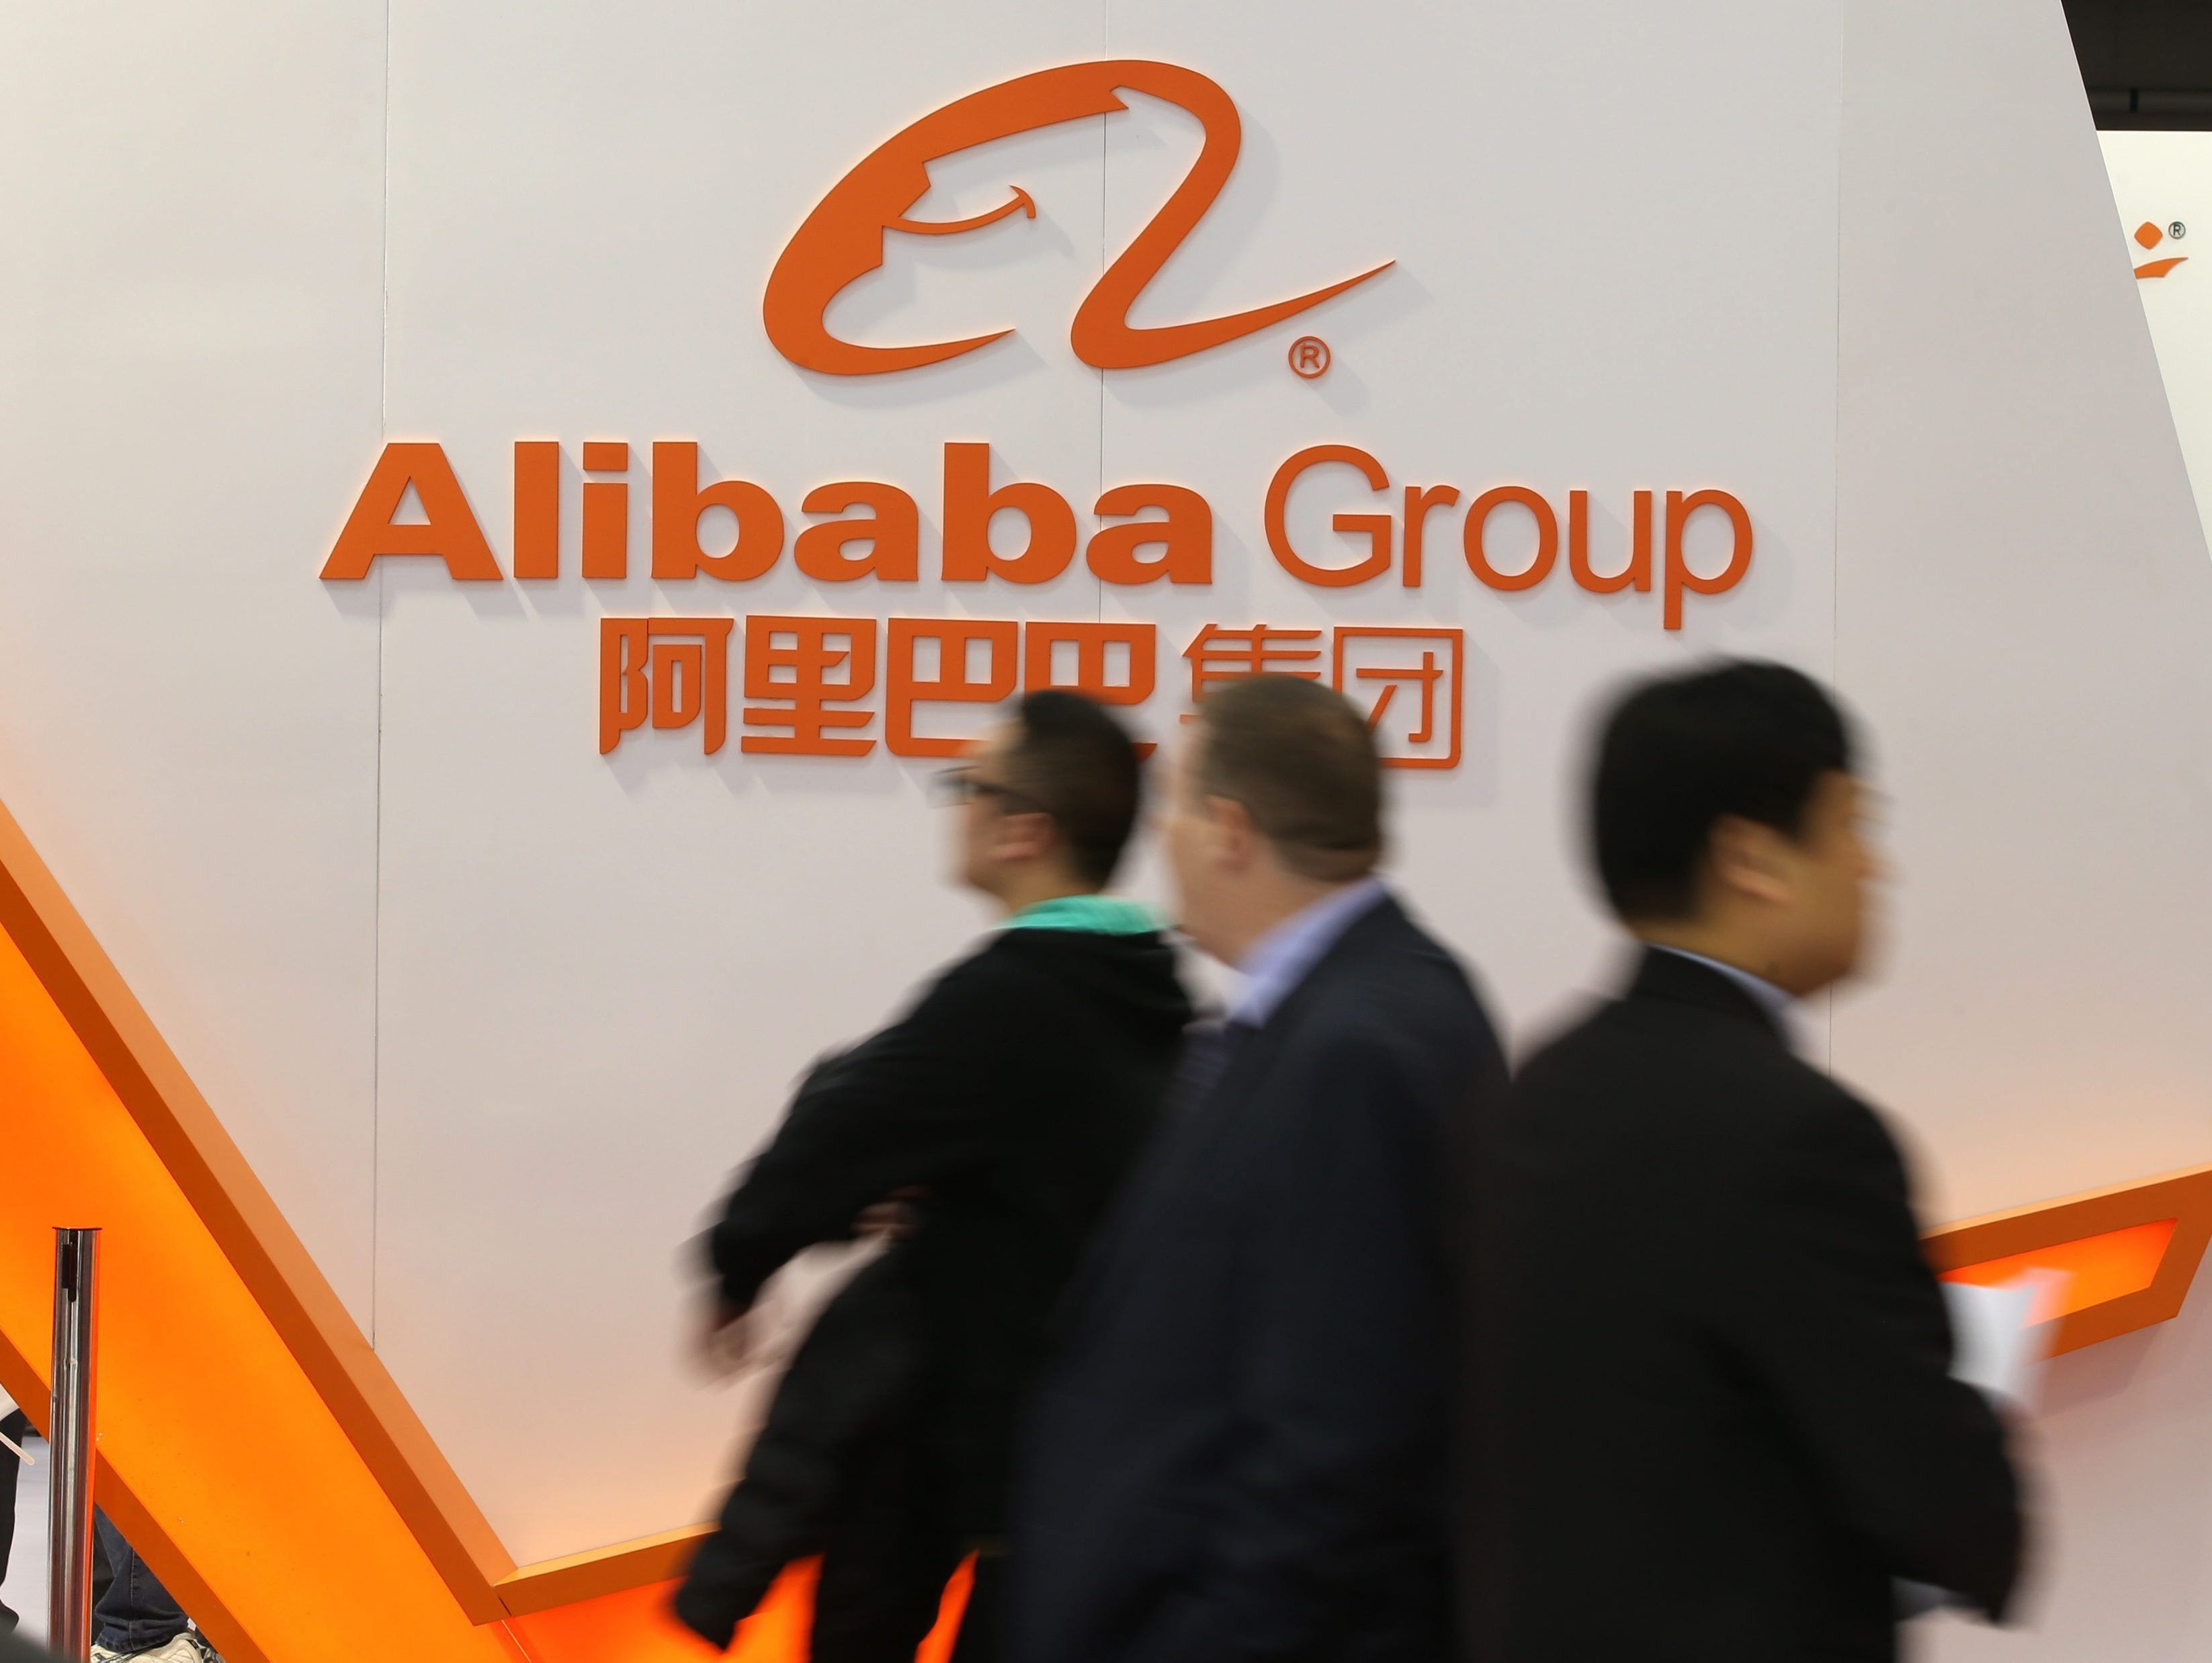 Exhibition visitors walk past the exhibition booth of the Alibaba Group on the opening day of the CeBIT 2015 international computer expo in Hanover, Germany, on March 16, 2015.